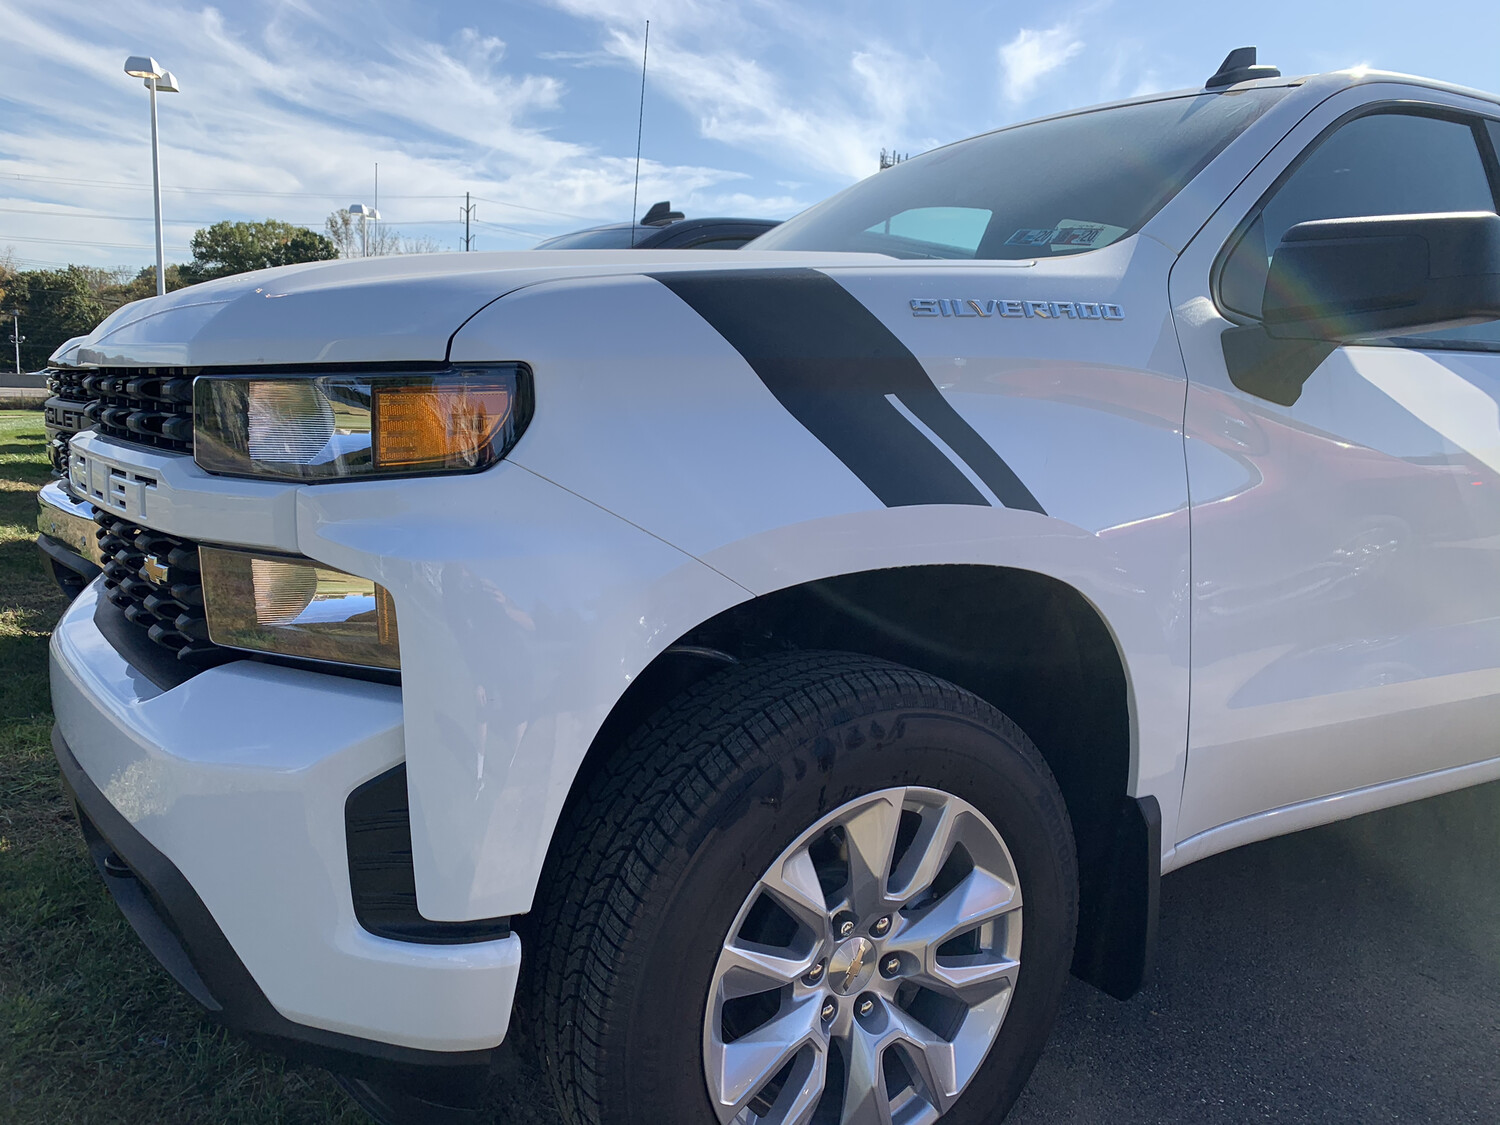 2019 - Up Silverado 1500 Fender Hash Mark Vinyl Graphics